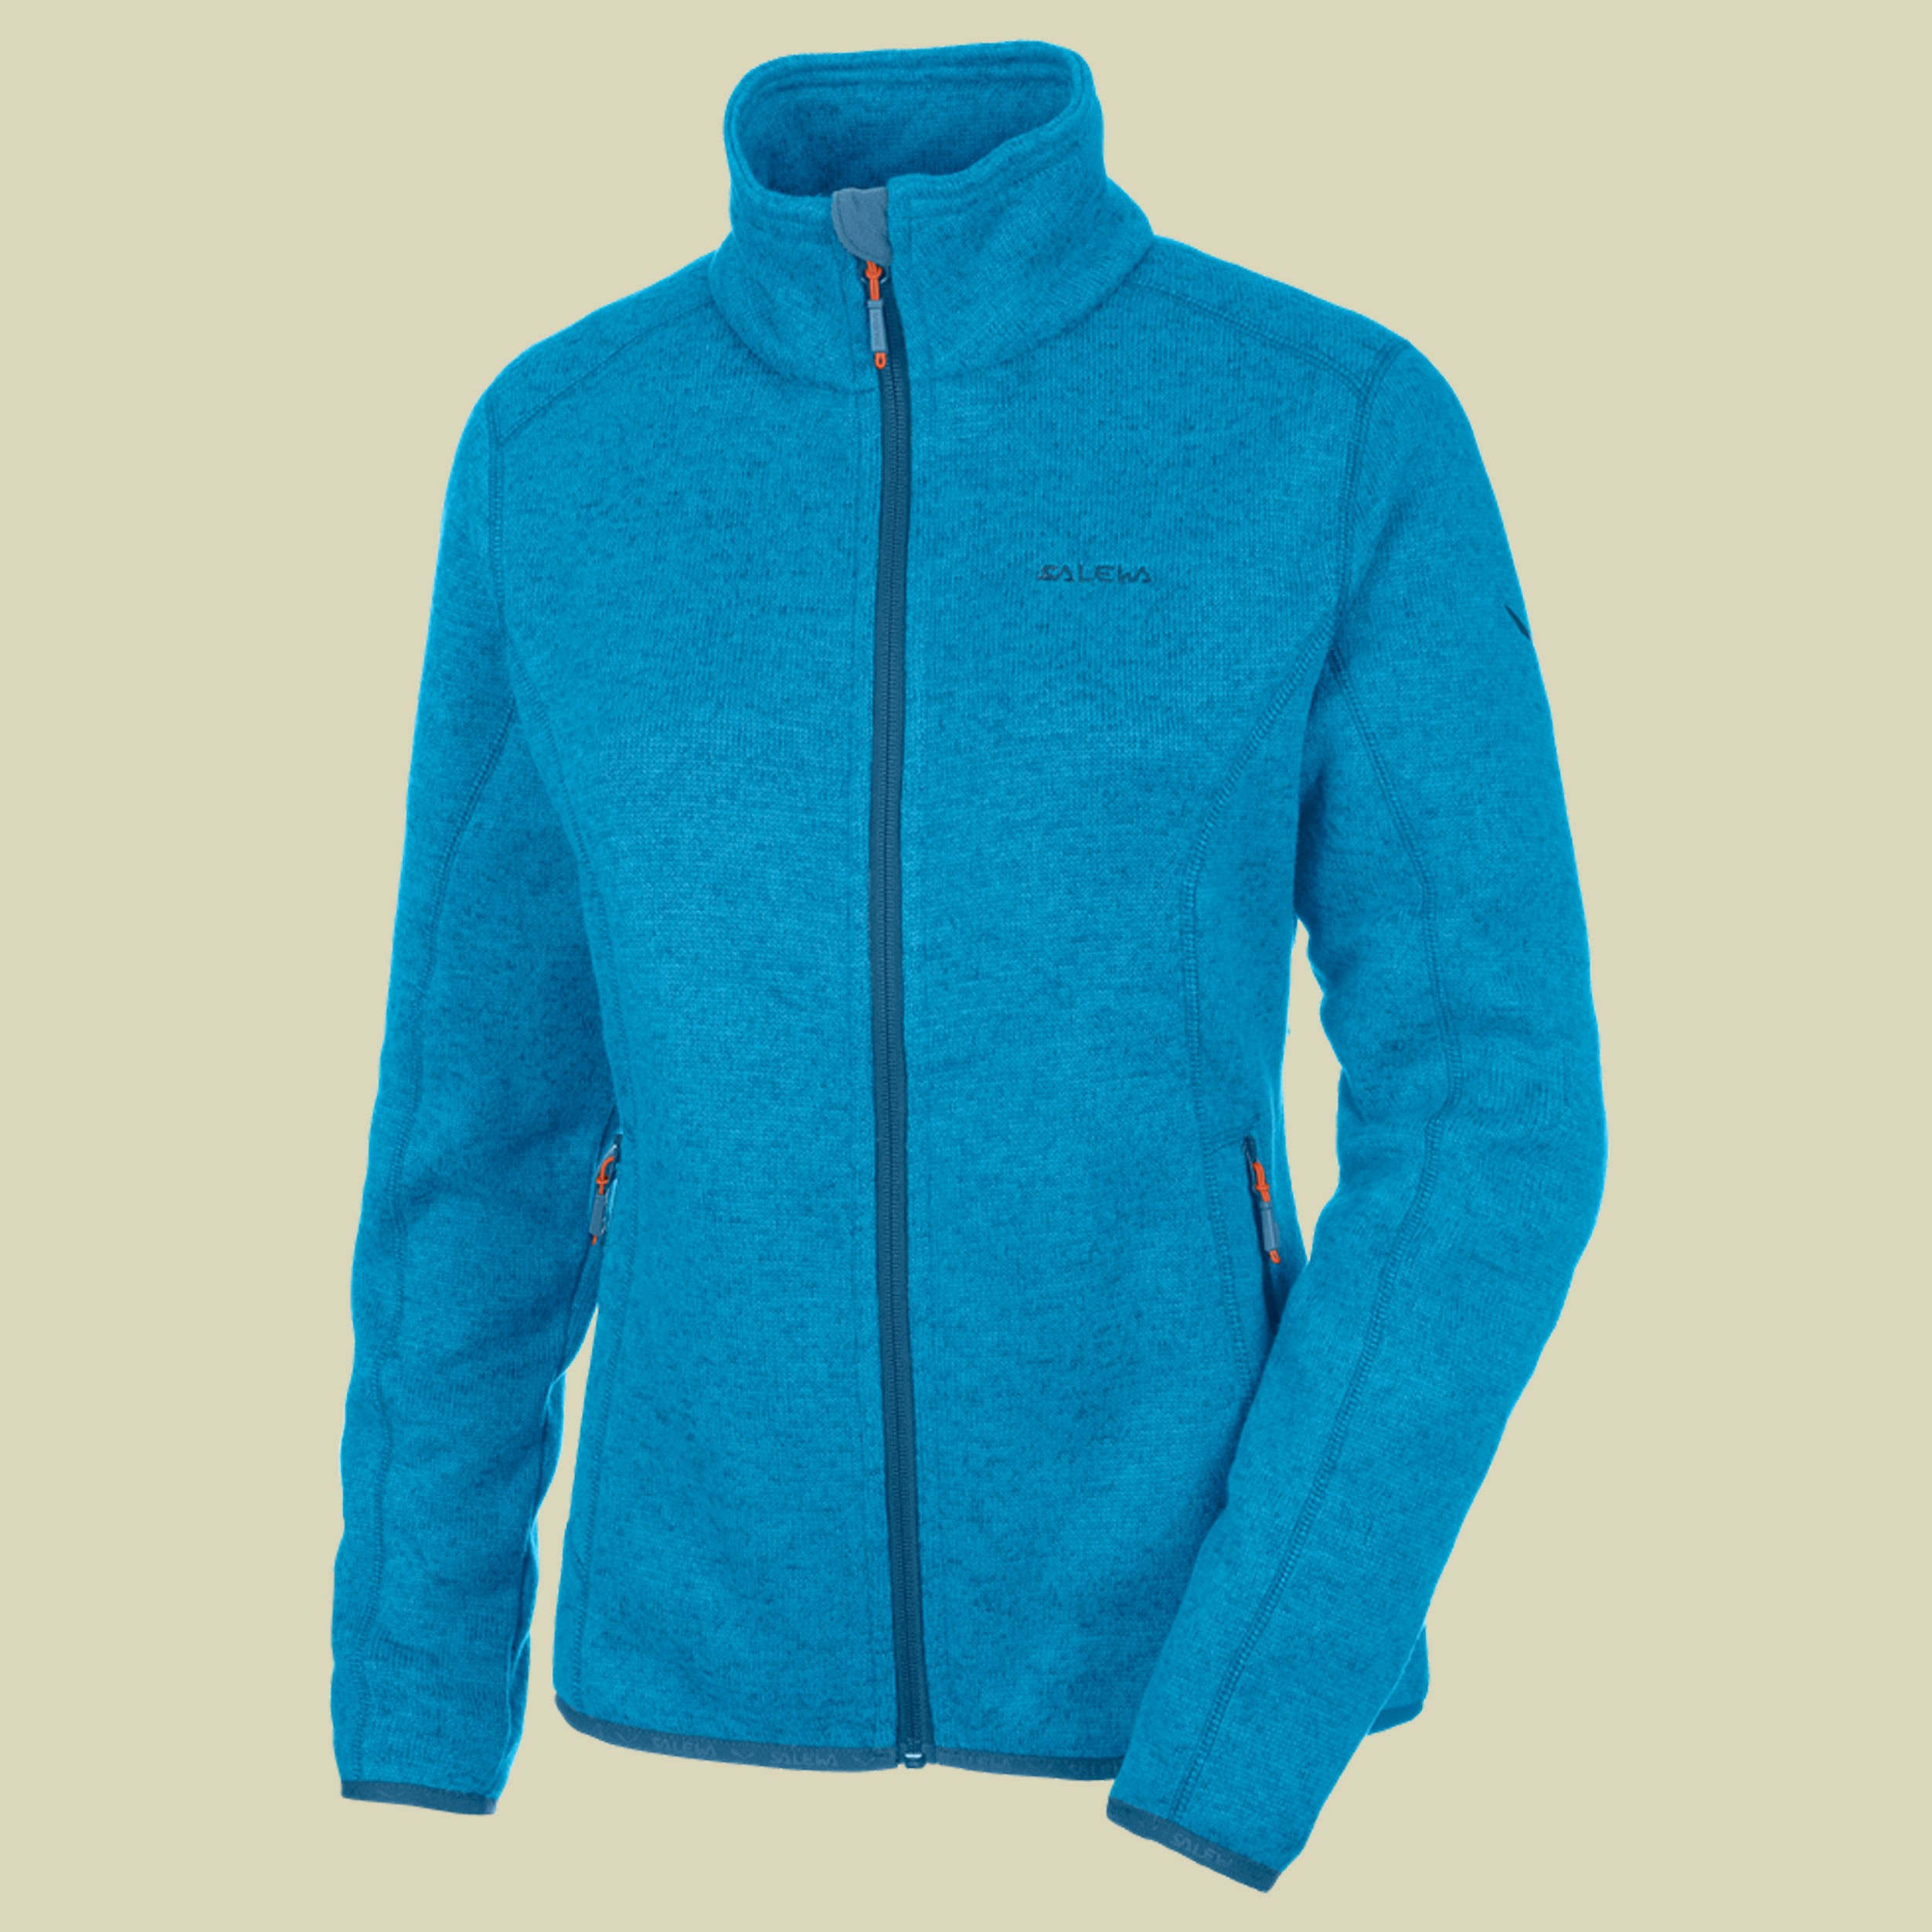 Kitz 3 PL Full-Zip Women